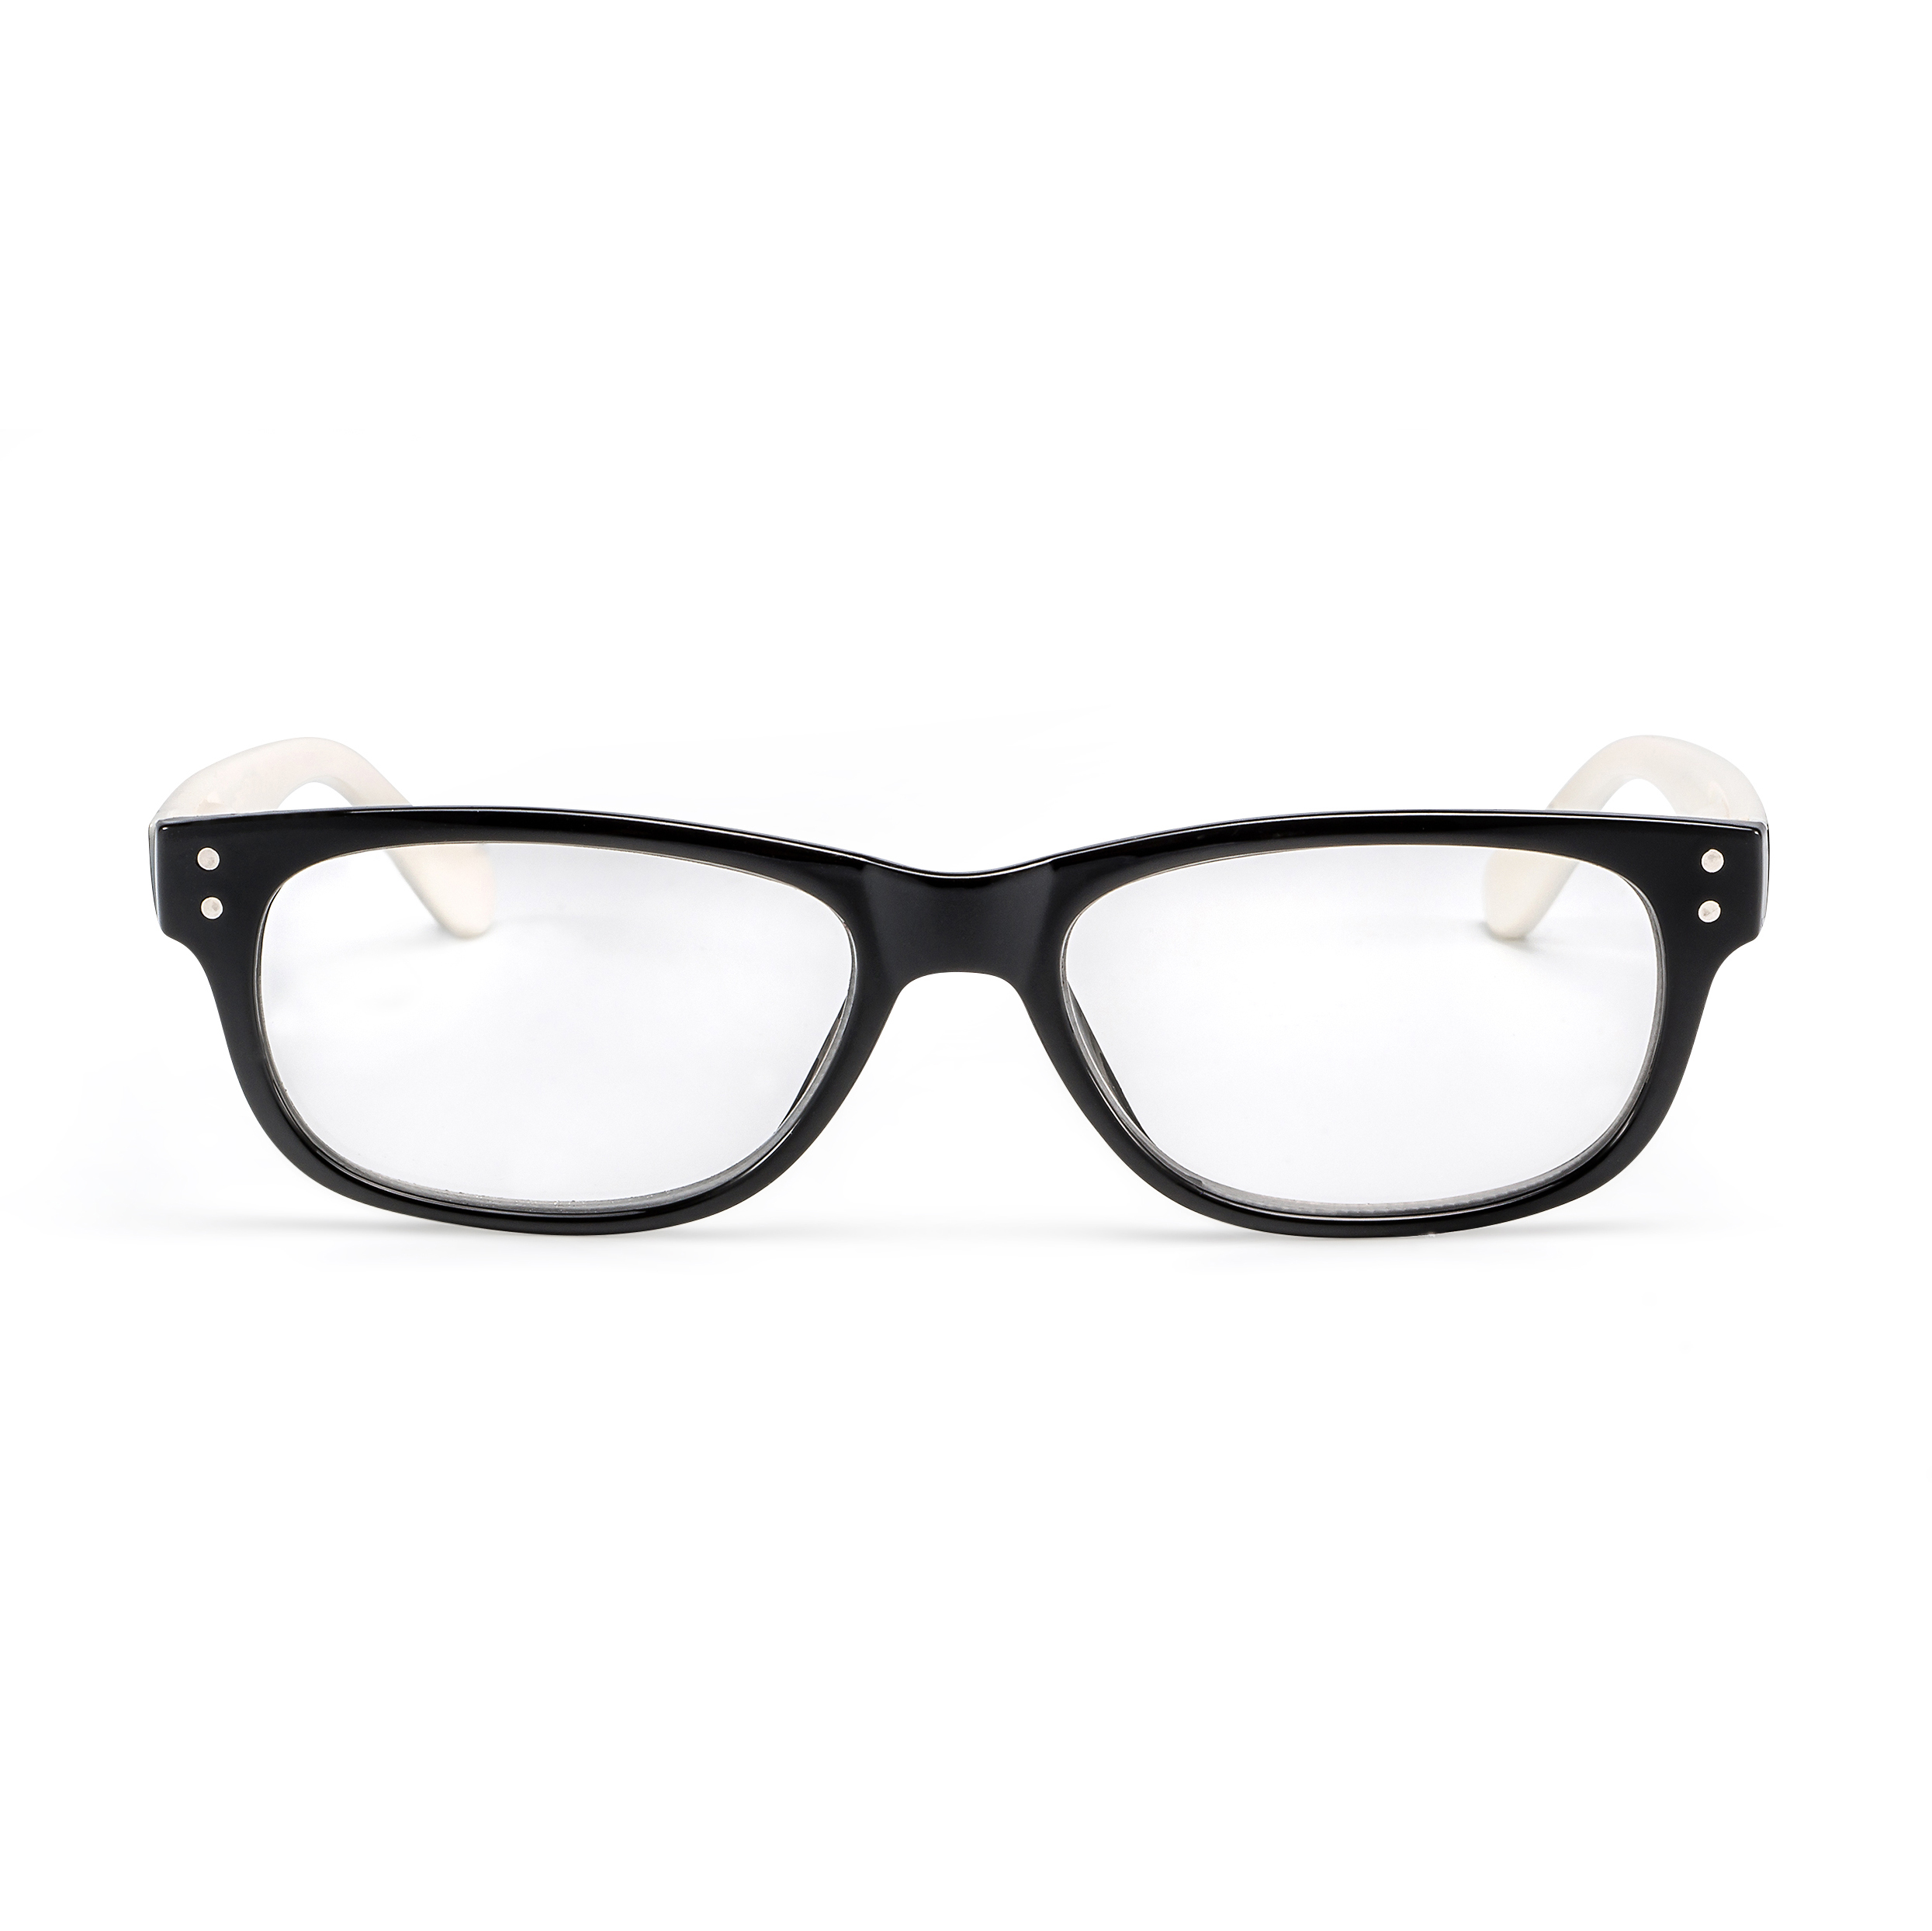 Frontansicht Lesebrille San Francisco weiss